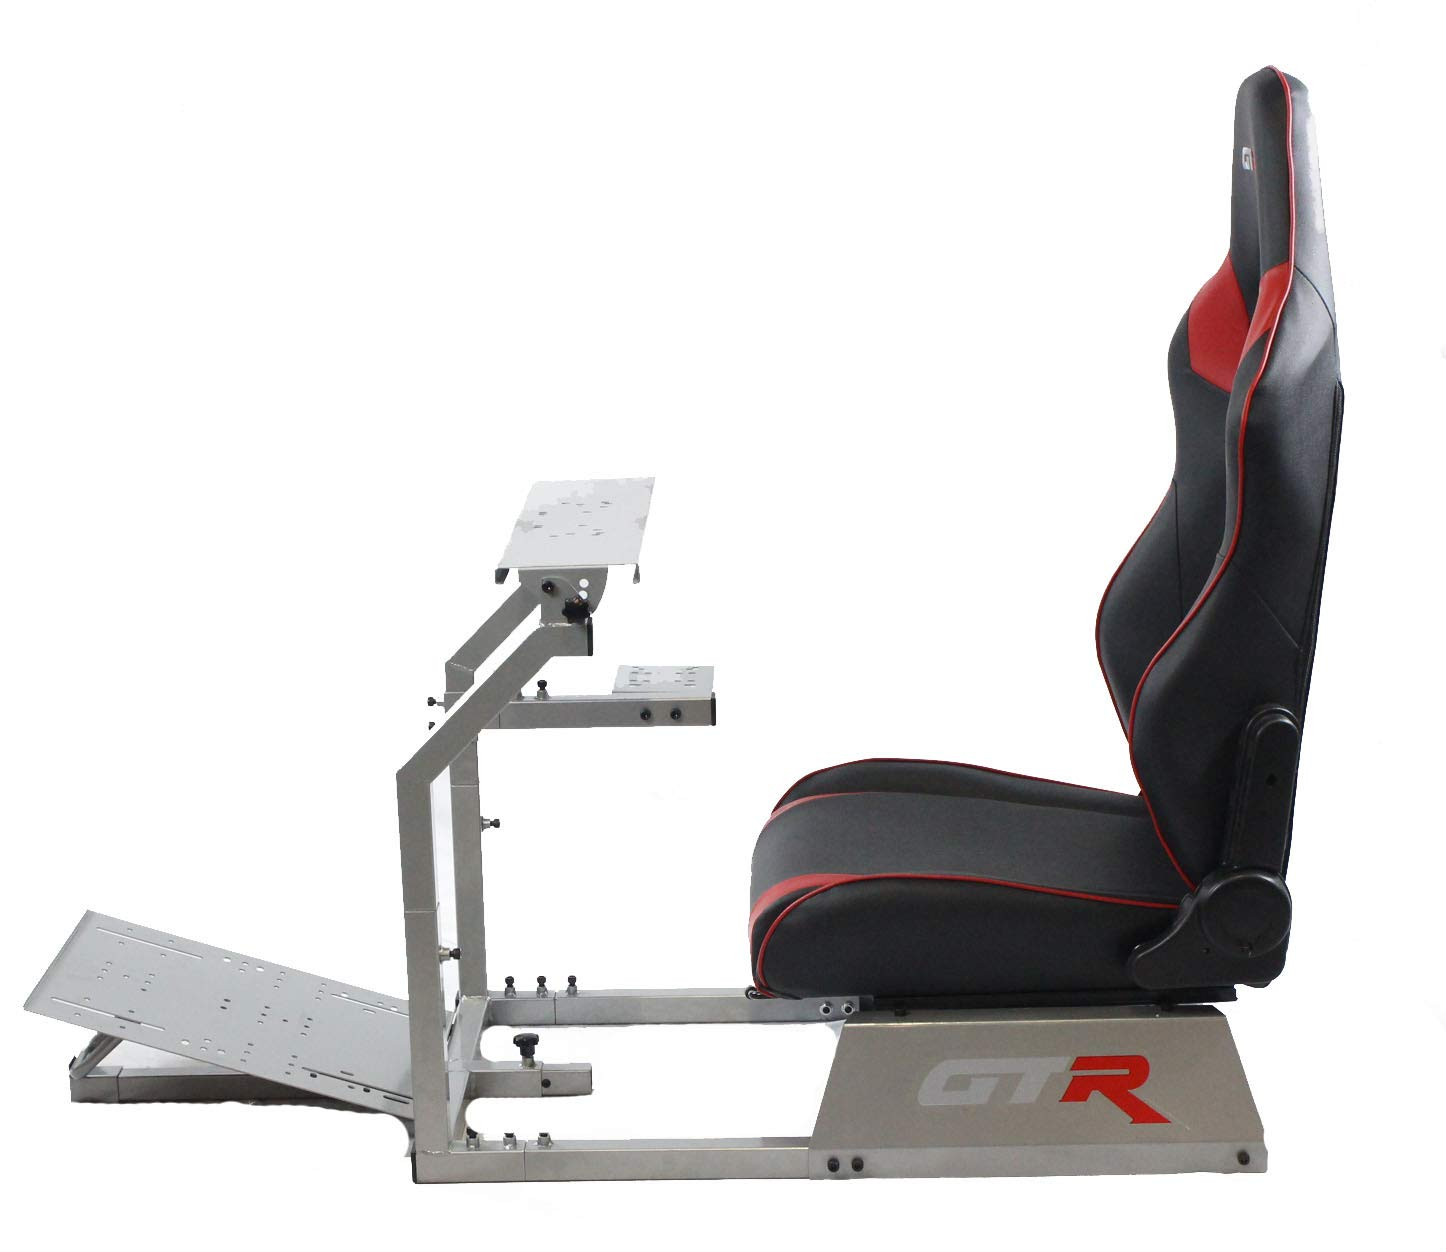 GGTR Racing Simulator Modelel